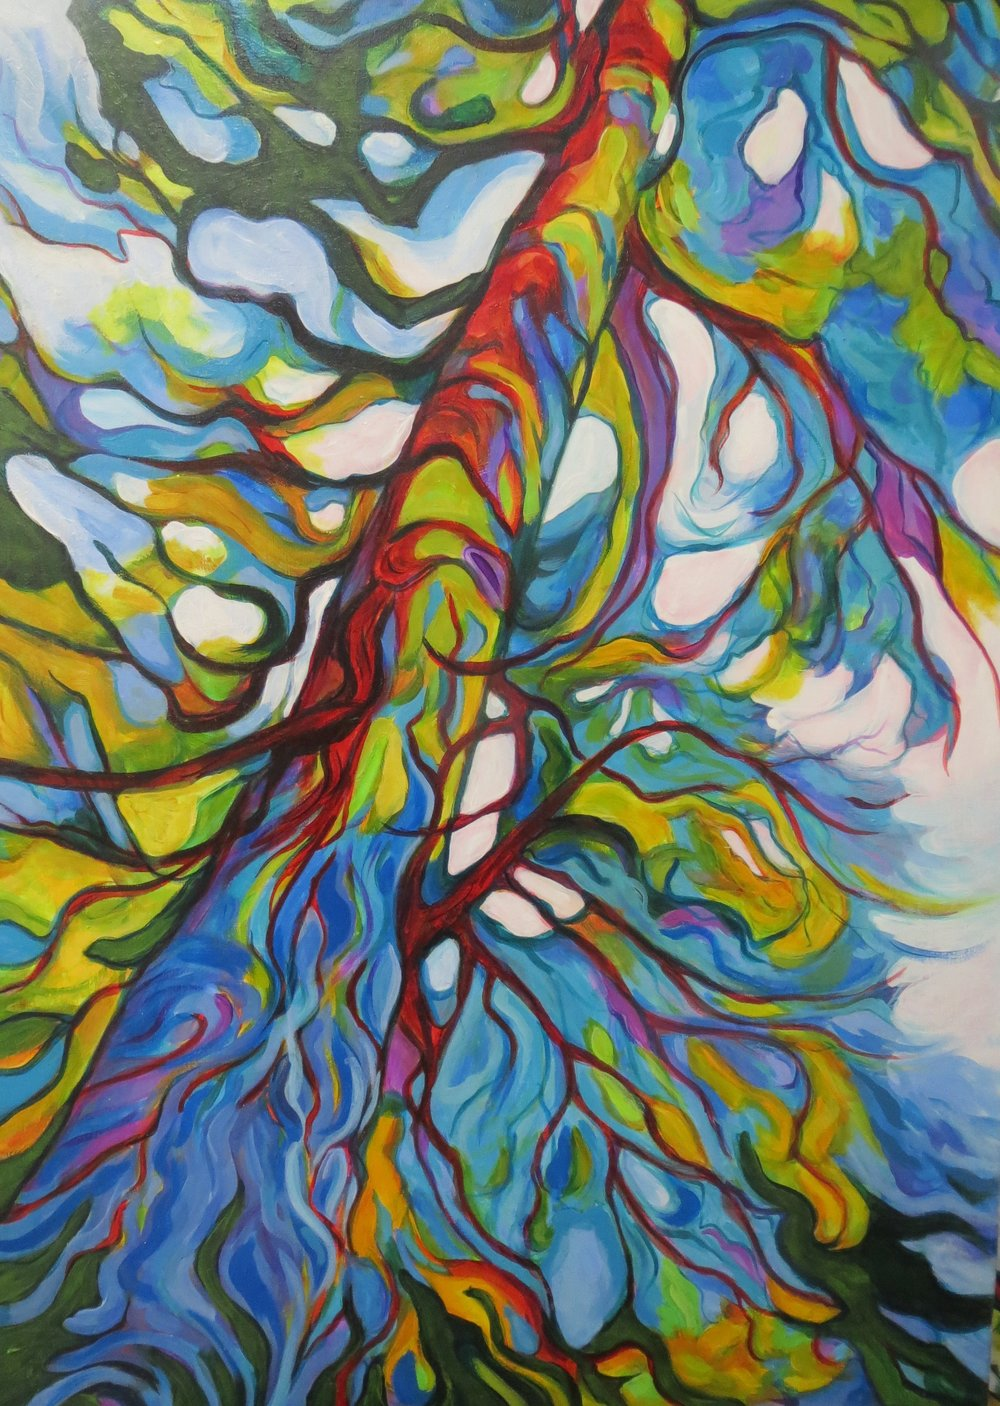 COOPER Sherry _gallery_05 Otway Forest Tree 24x36 acrylic on canvas.jpg